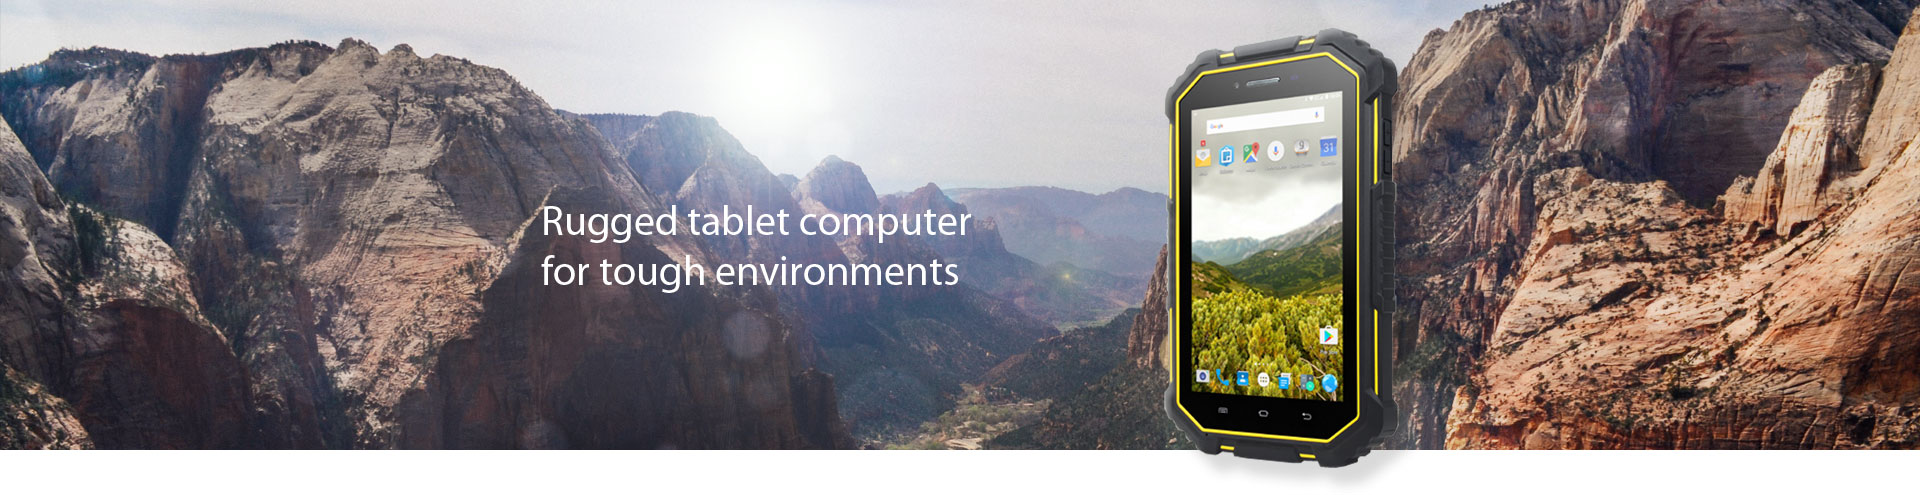 Rugged tablet computer for tough environments